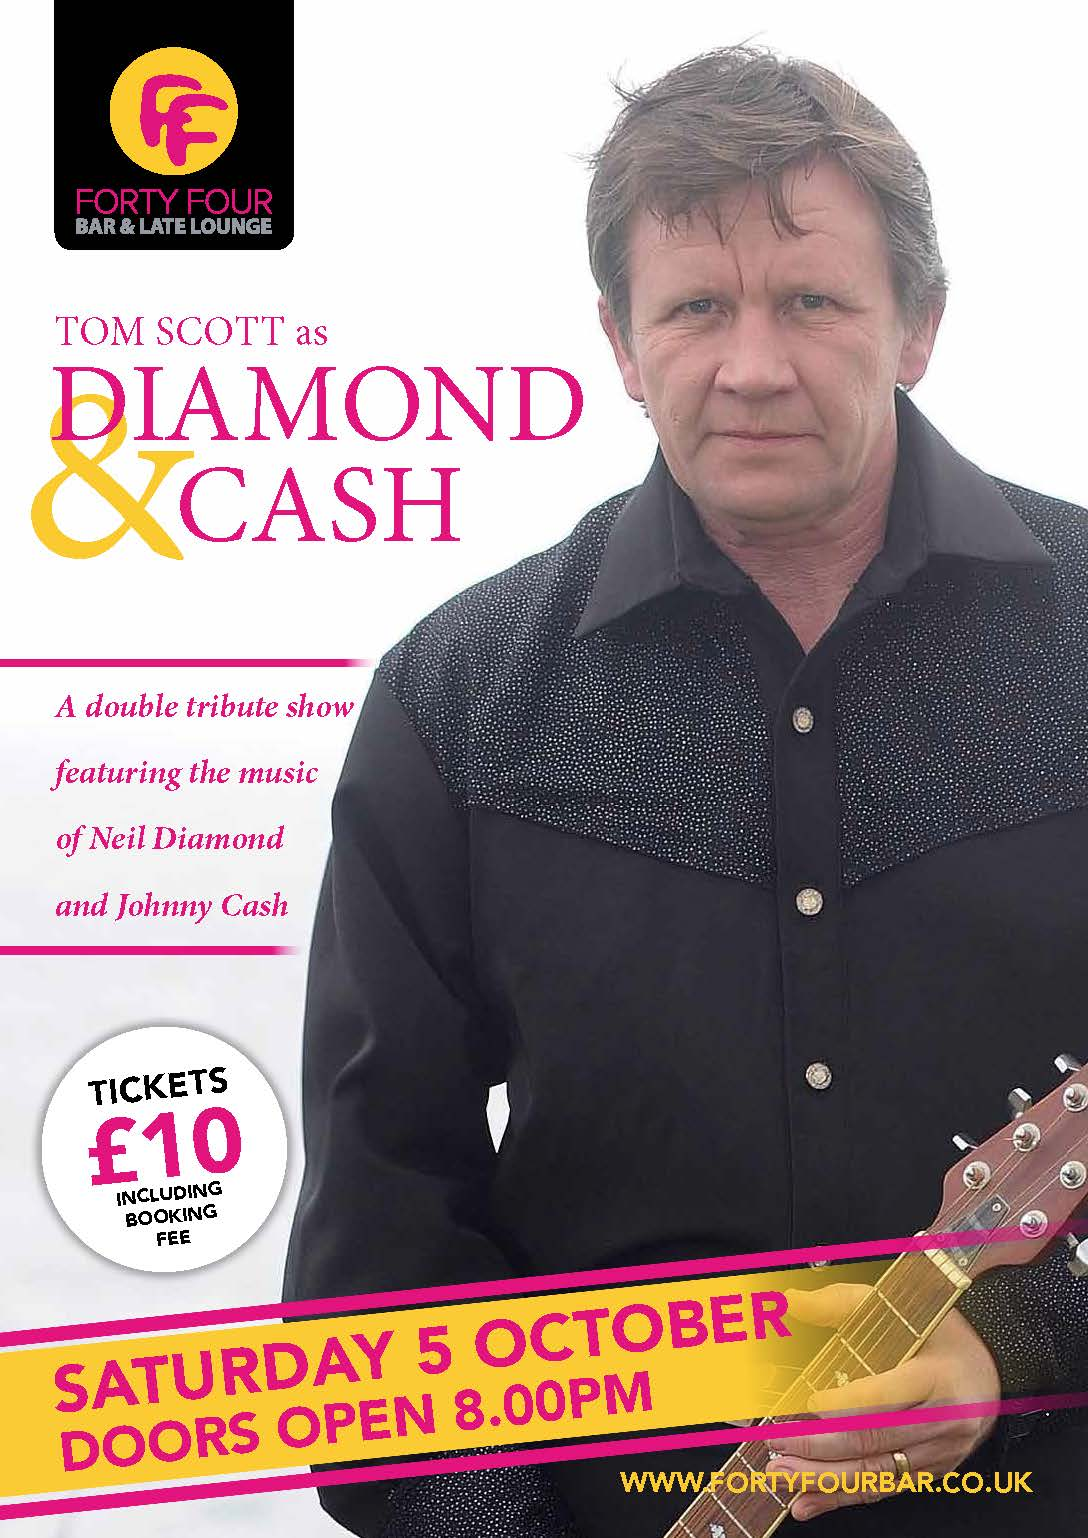 Diamond & Cash tribute act